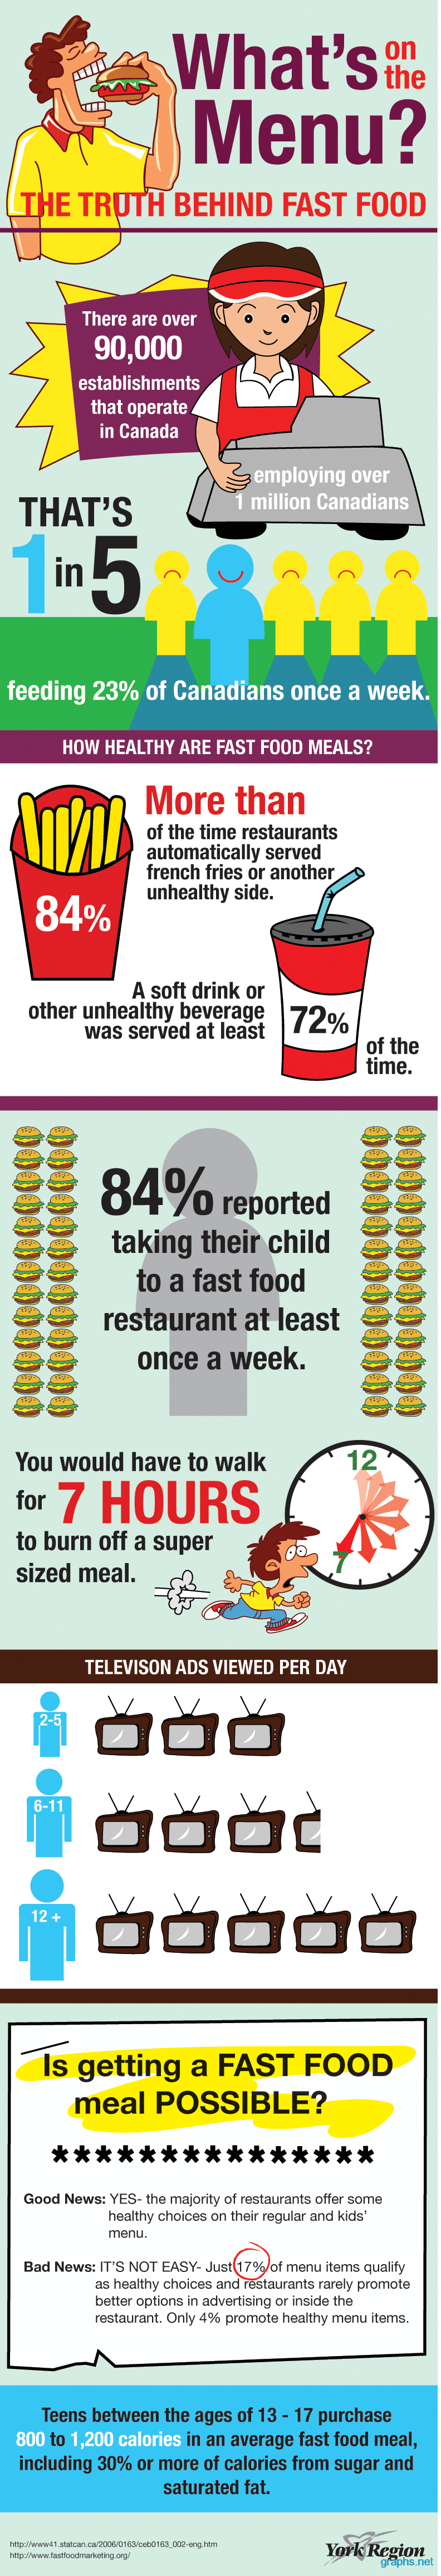 truth behind fast food facts